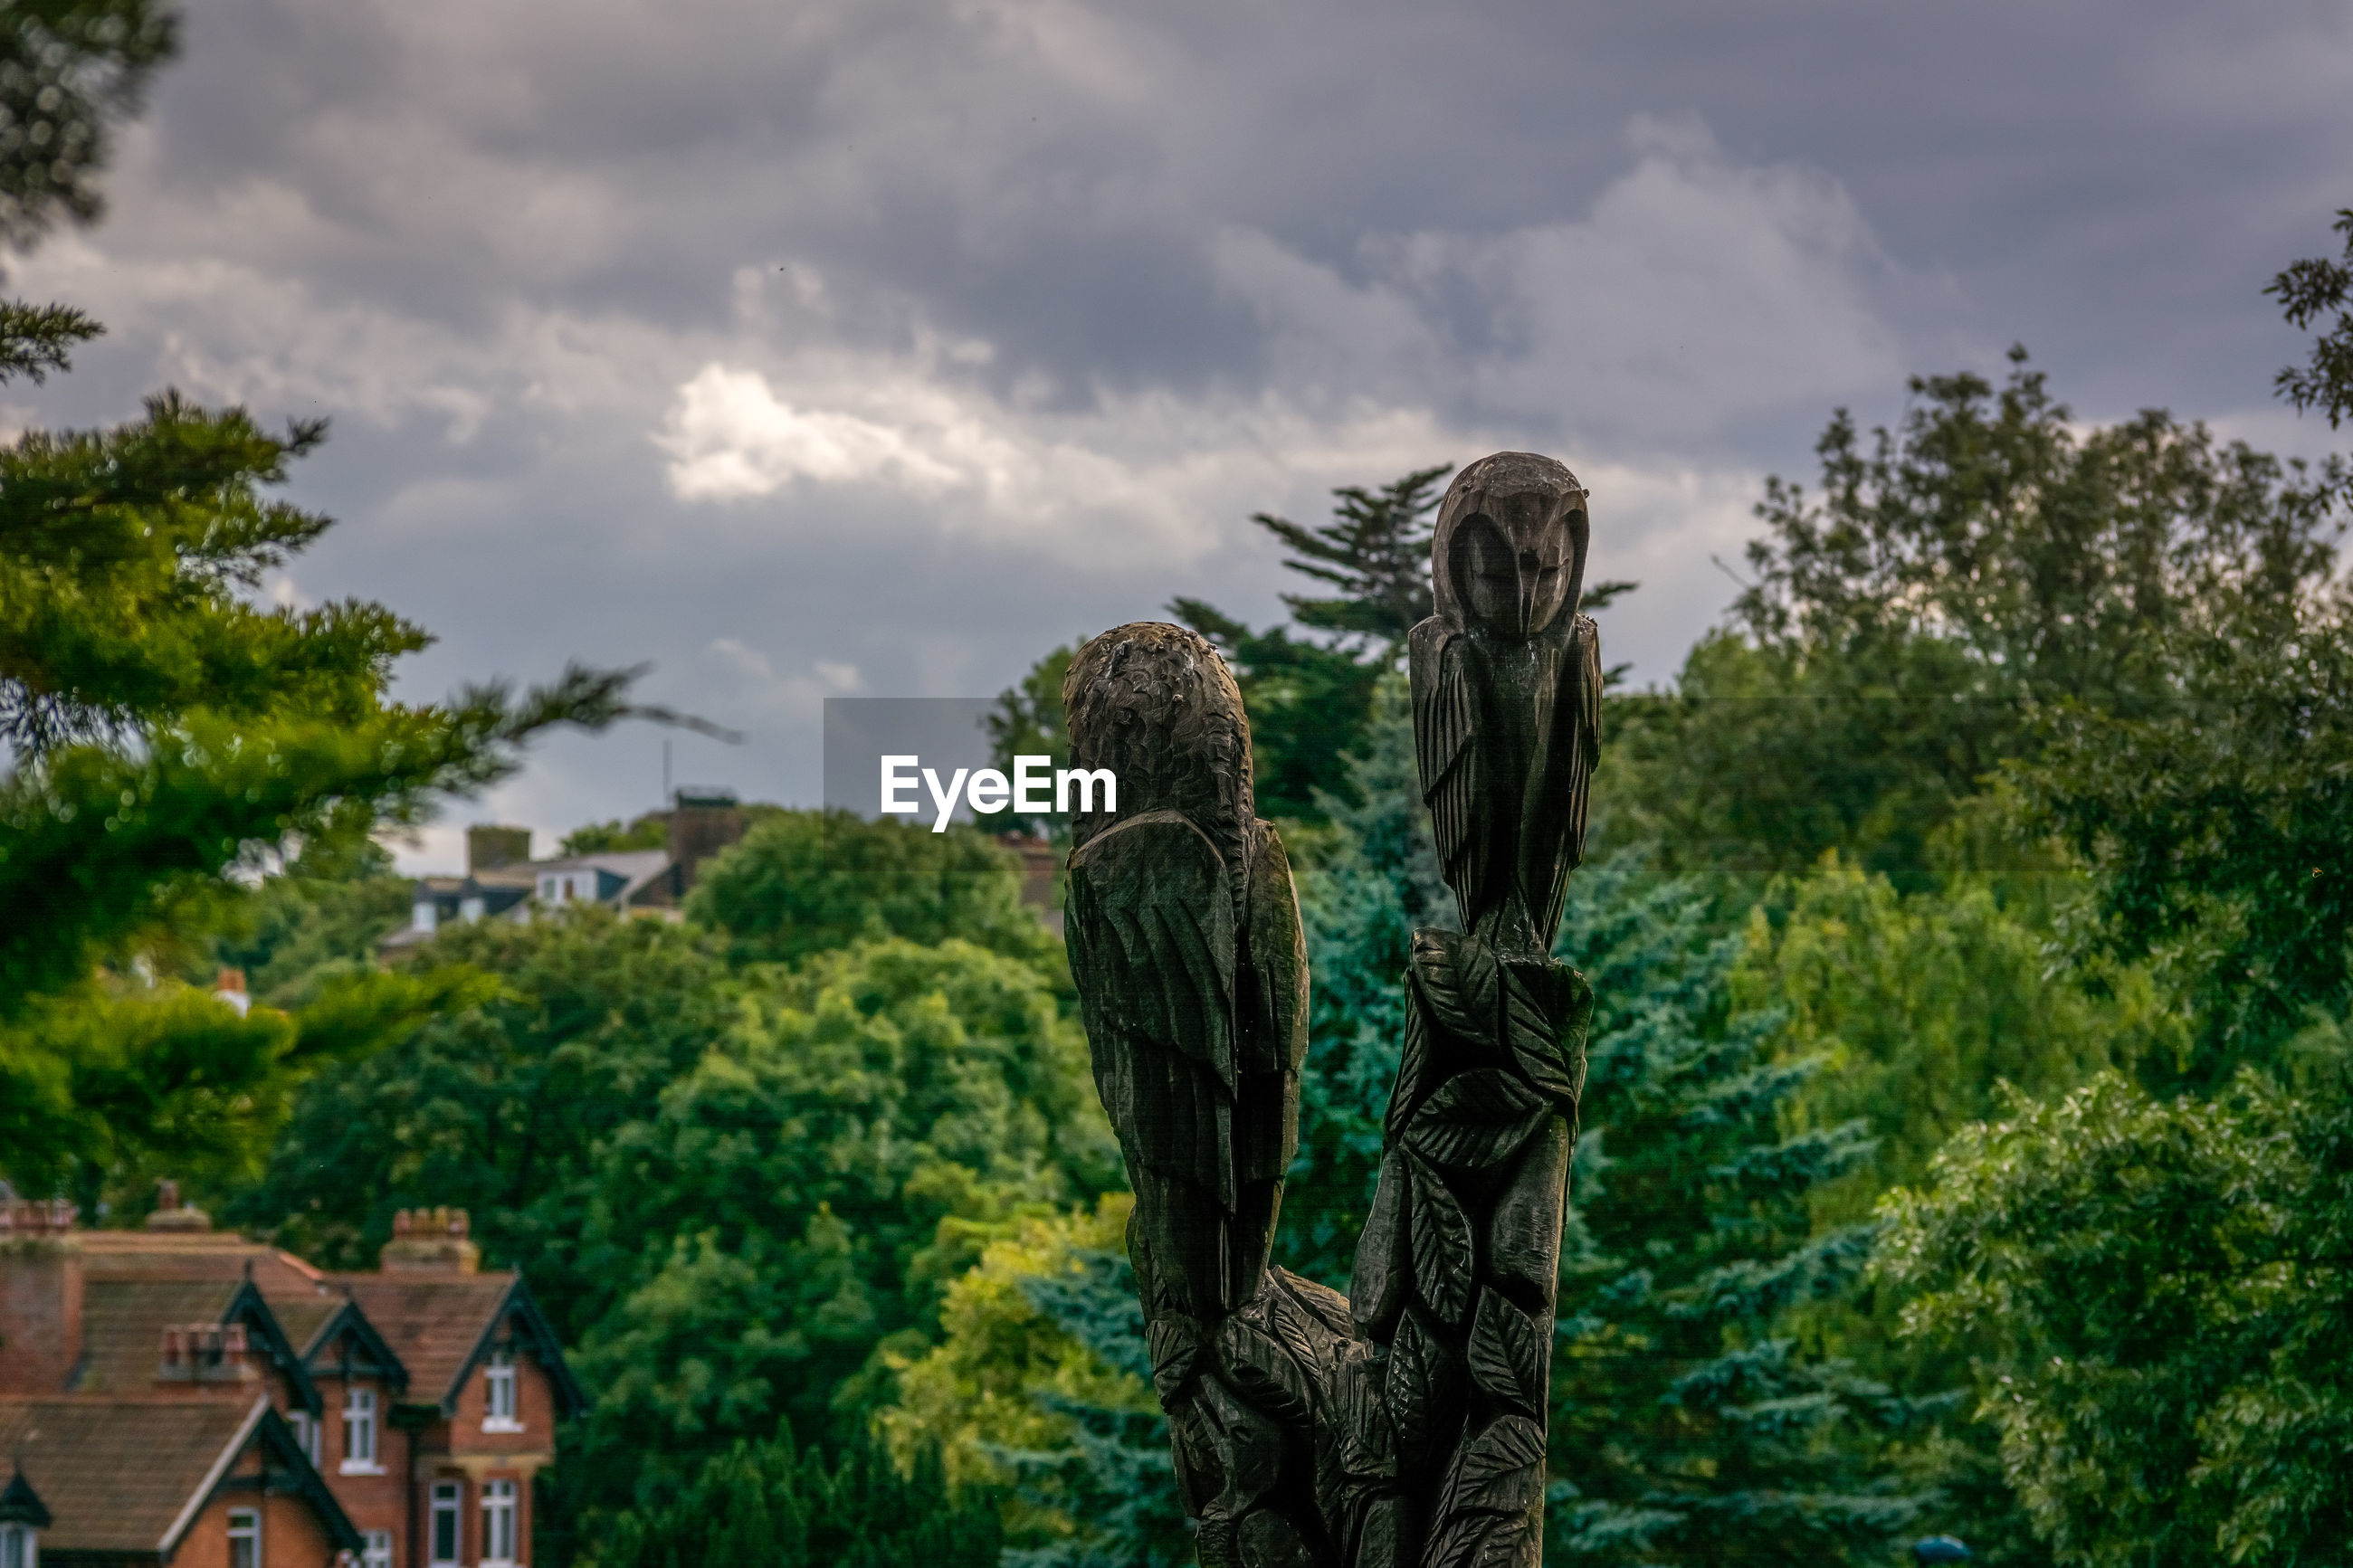 LOW ANGLE VIEW OF STATUE AGAINST TREES